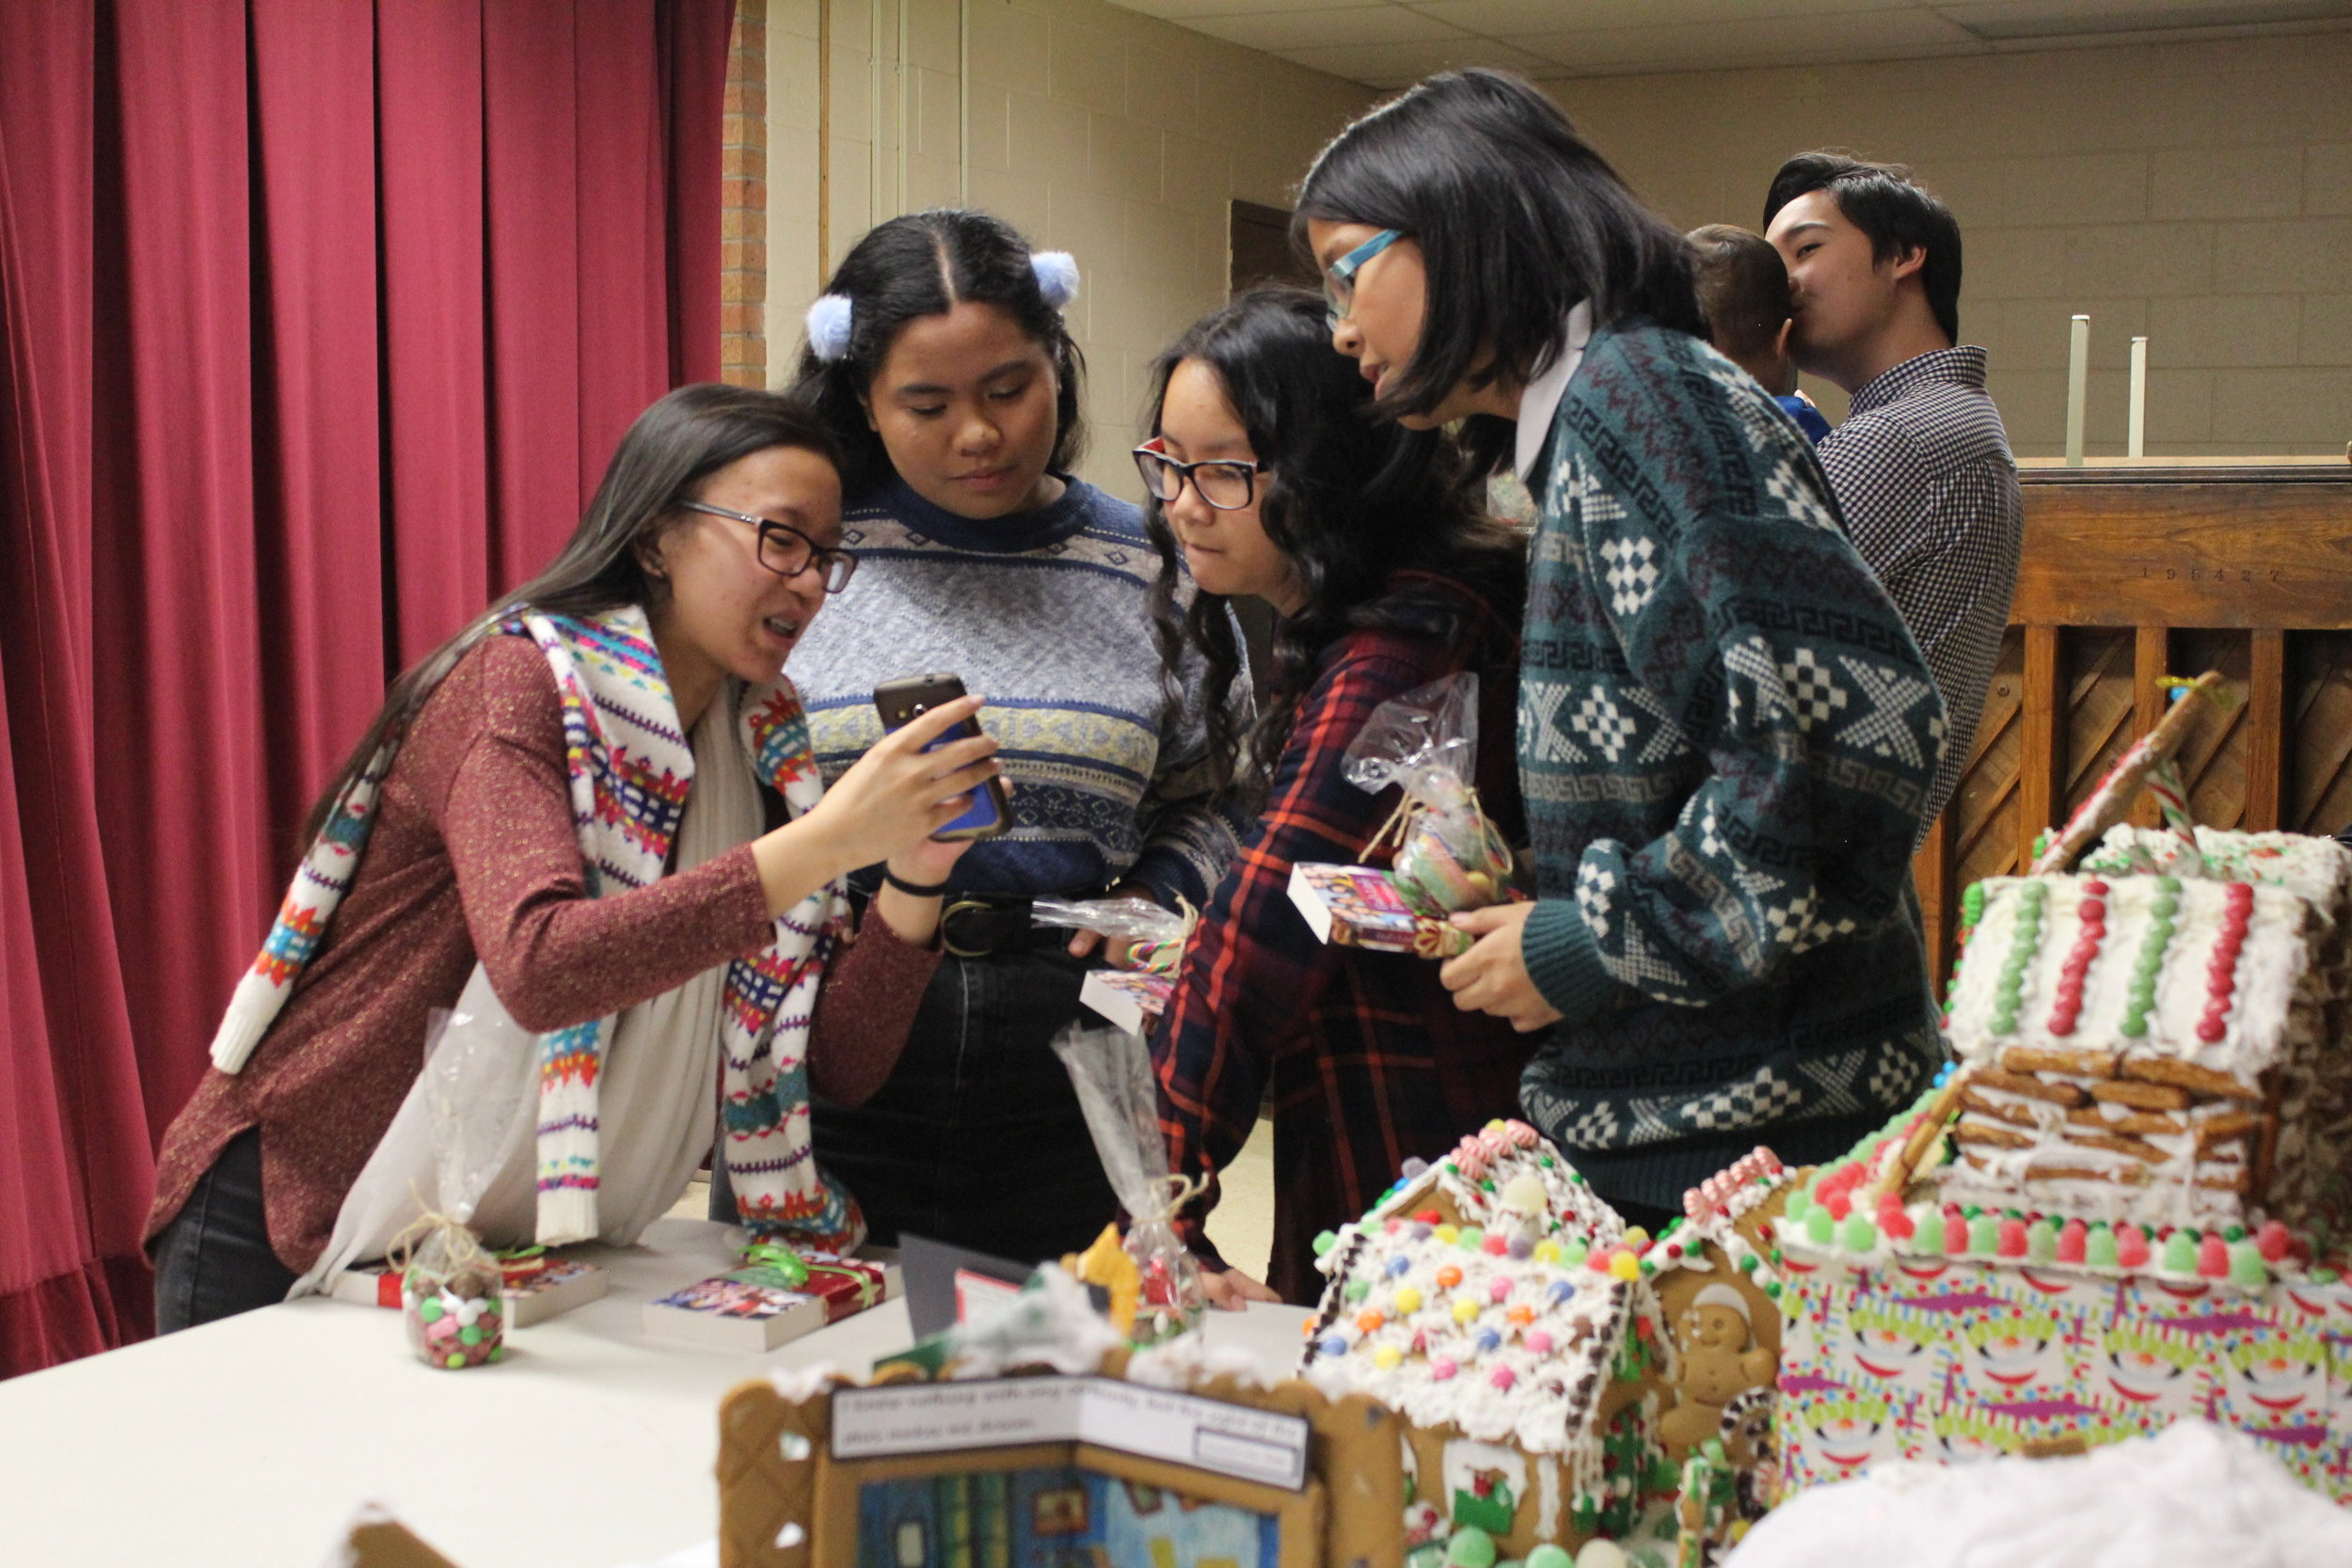 Some of the teens during Gift of Christmas 2016